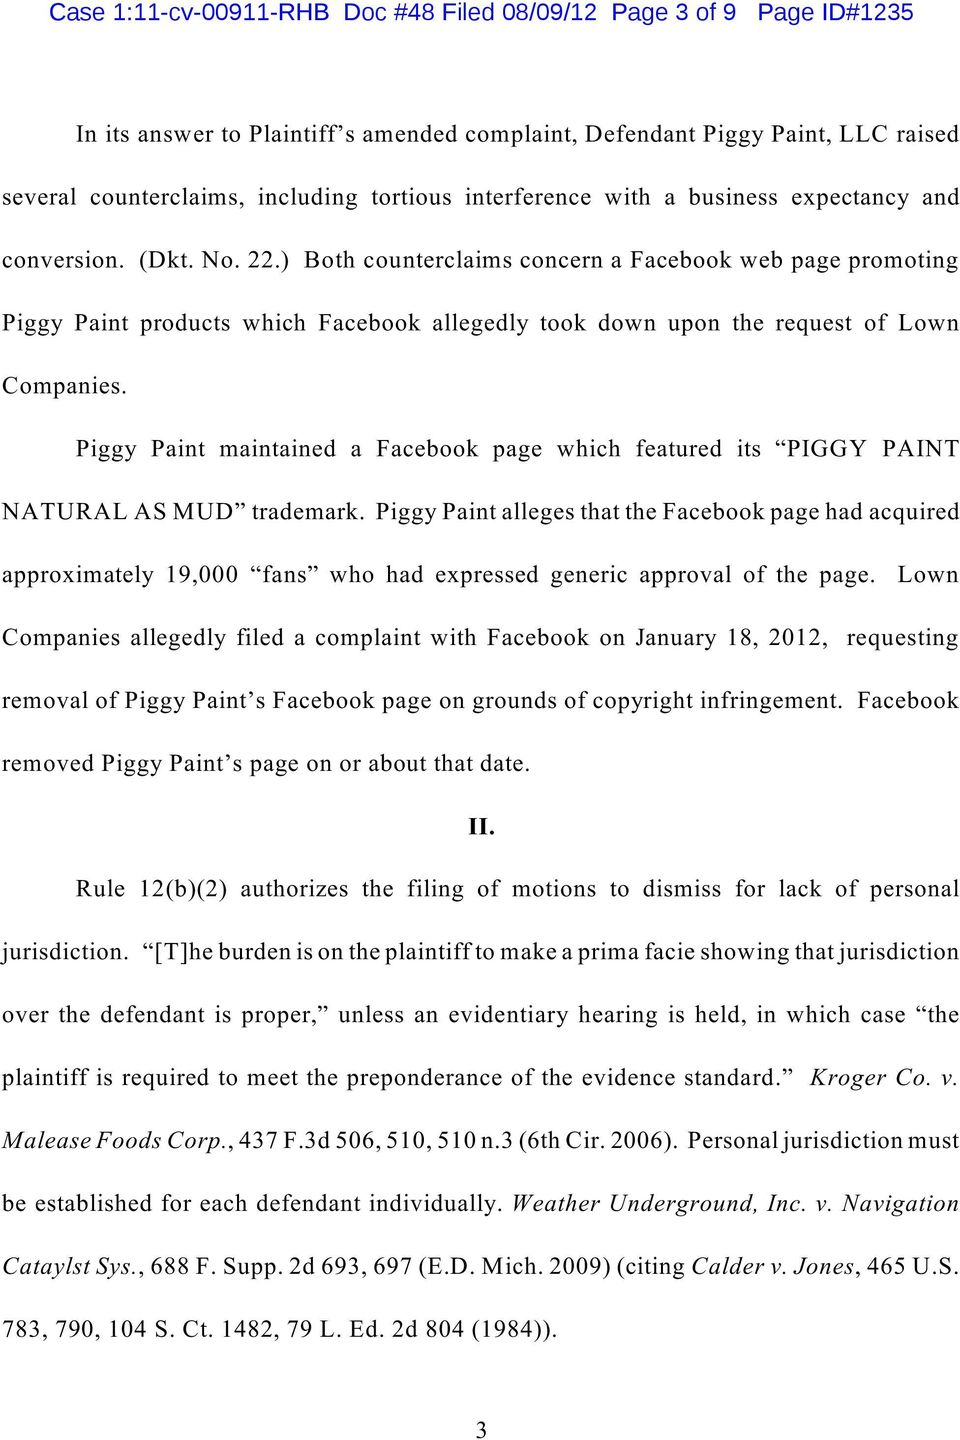 ) Both counterclaims concern a Facebook web page promoting Piggy Paint products which Facebook allegedly took down upon the request of Lown Companies.